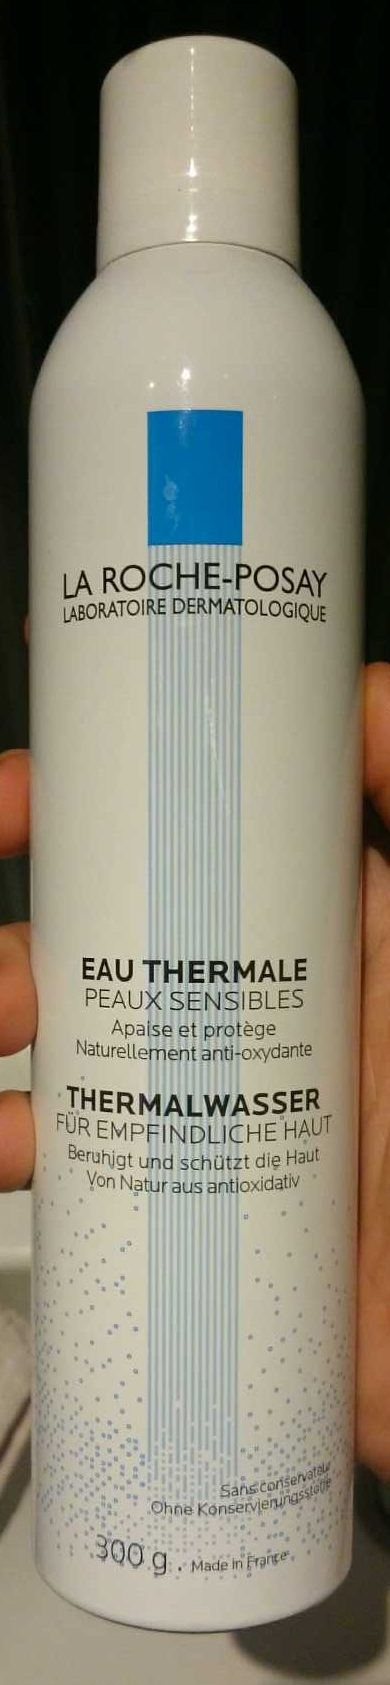 Eaux Thermal peaux sensibles - Product